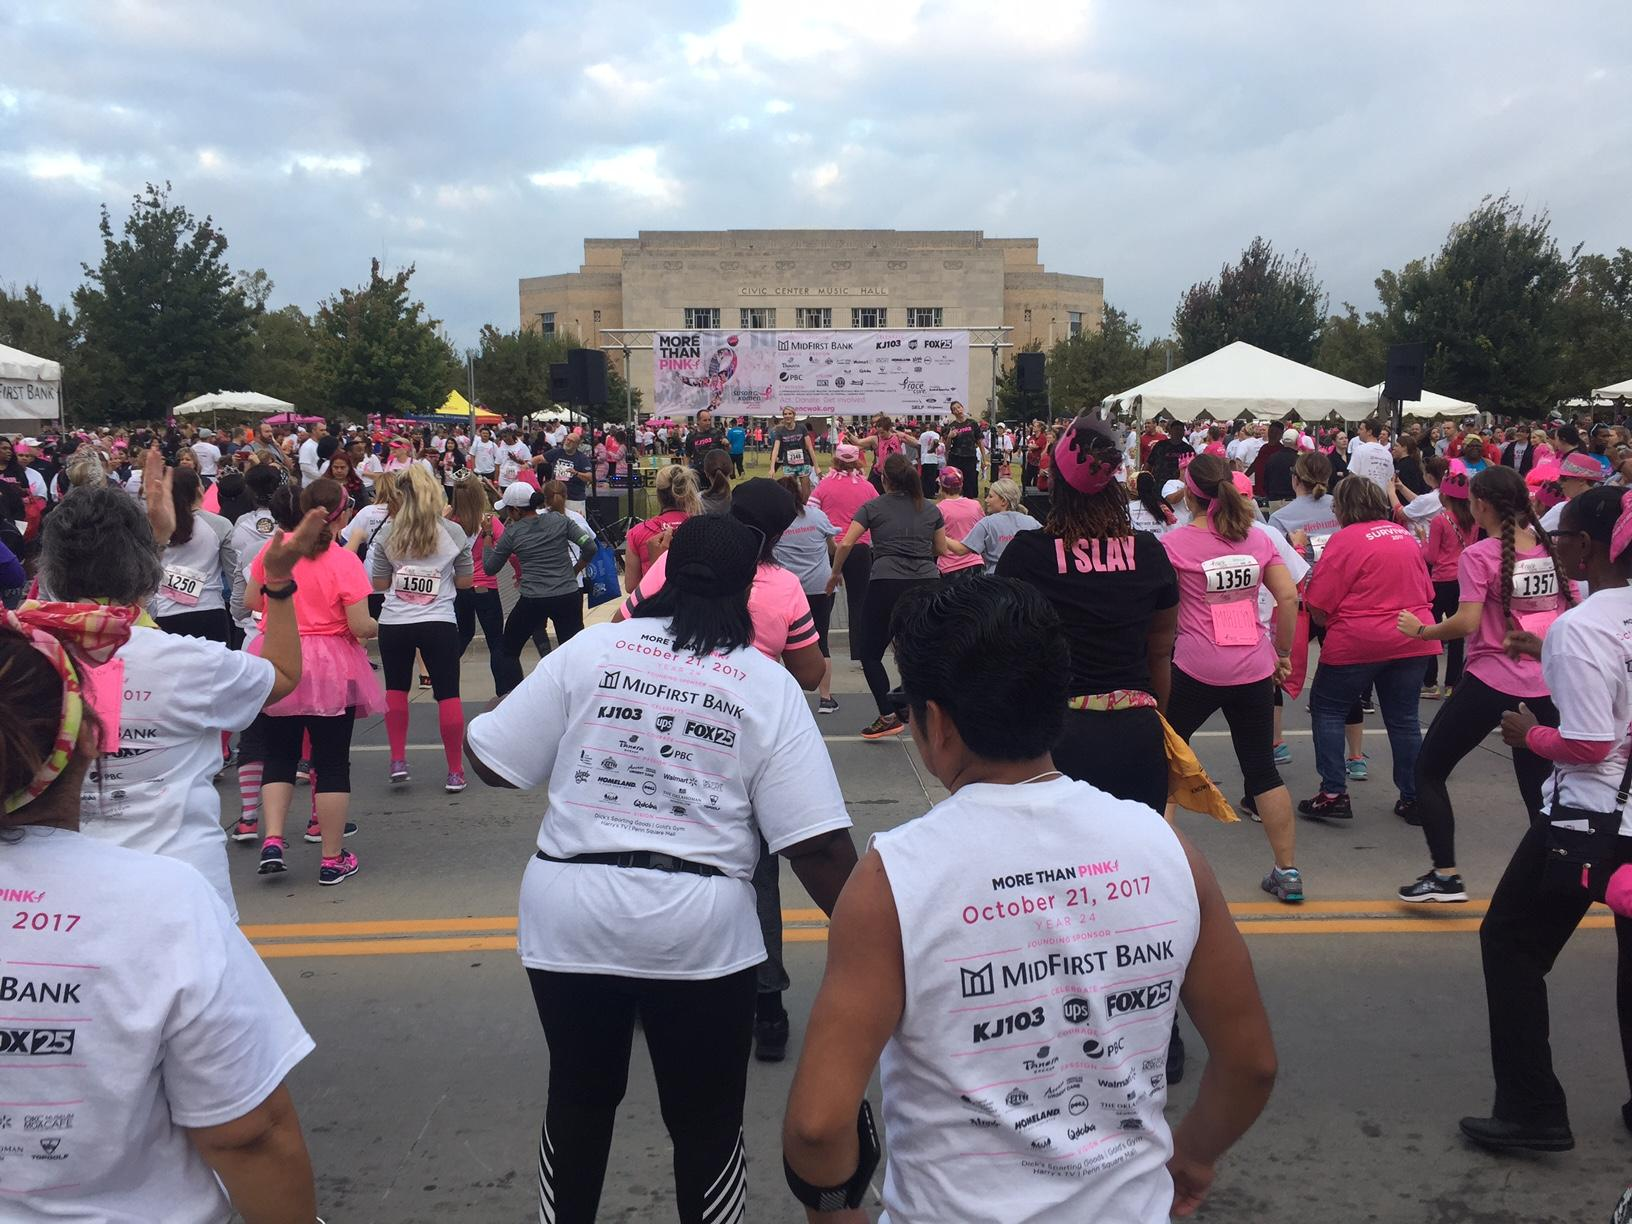 Getting ready for the annual Race for the Cure in Oklahoma City on Saturday, October 21, 2017.  (Scott Noland/KOKH)